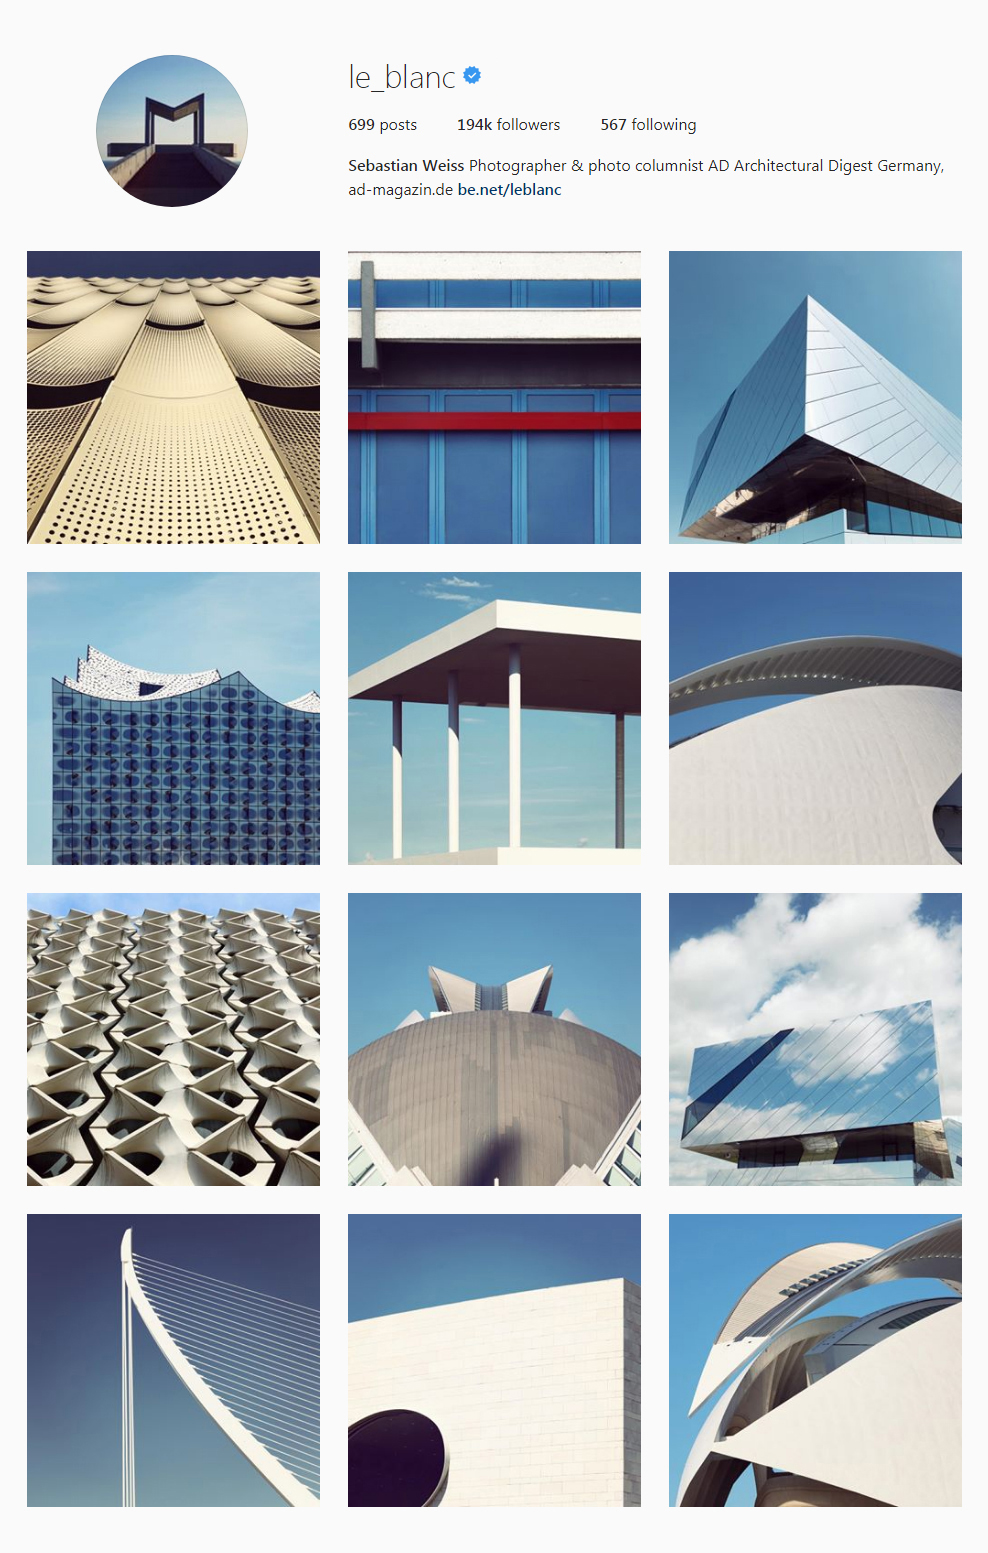 Best Architectural Instagram Feeds of 2017 - le_blanc